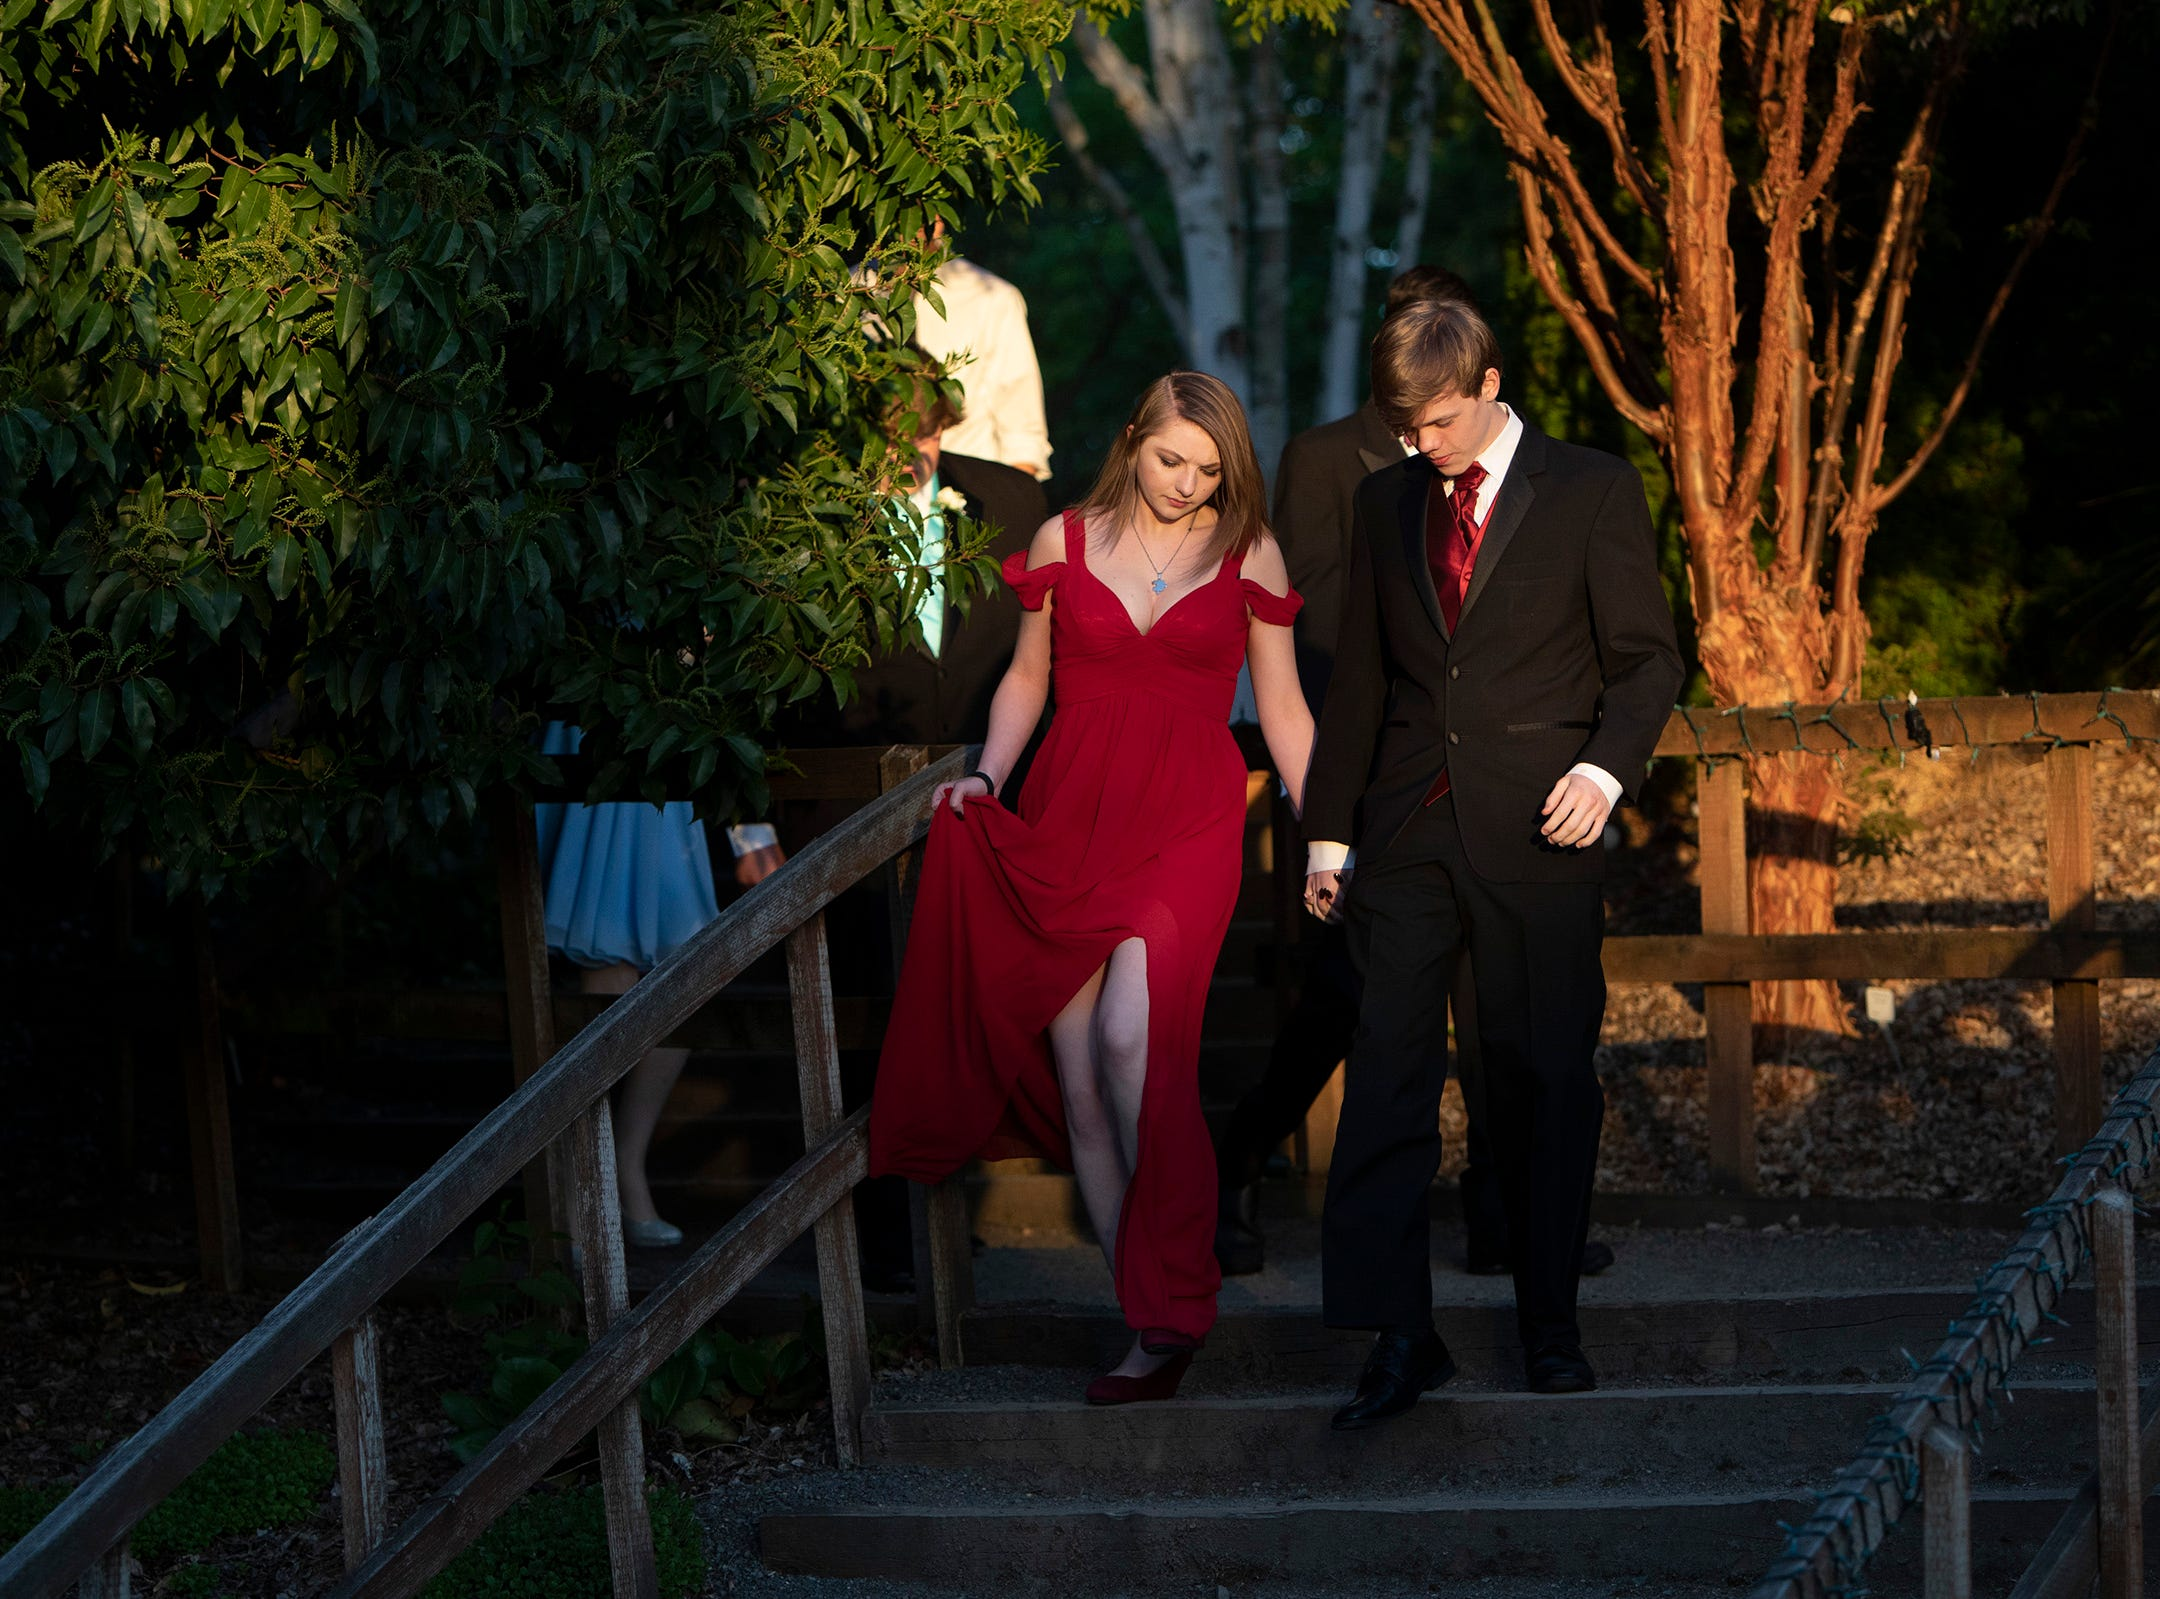 Kaleb Gribble, 17, and Serene Smith, 18, walk through the Oregon Garden grounds to the Silverton High School prom on Saturday, May 11.